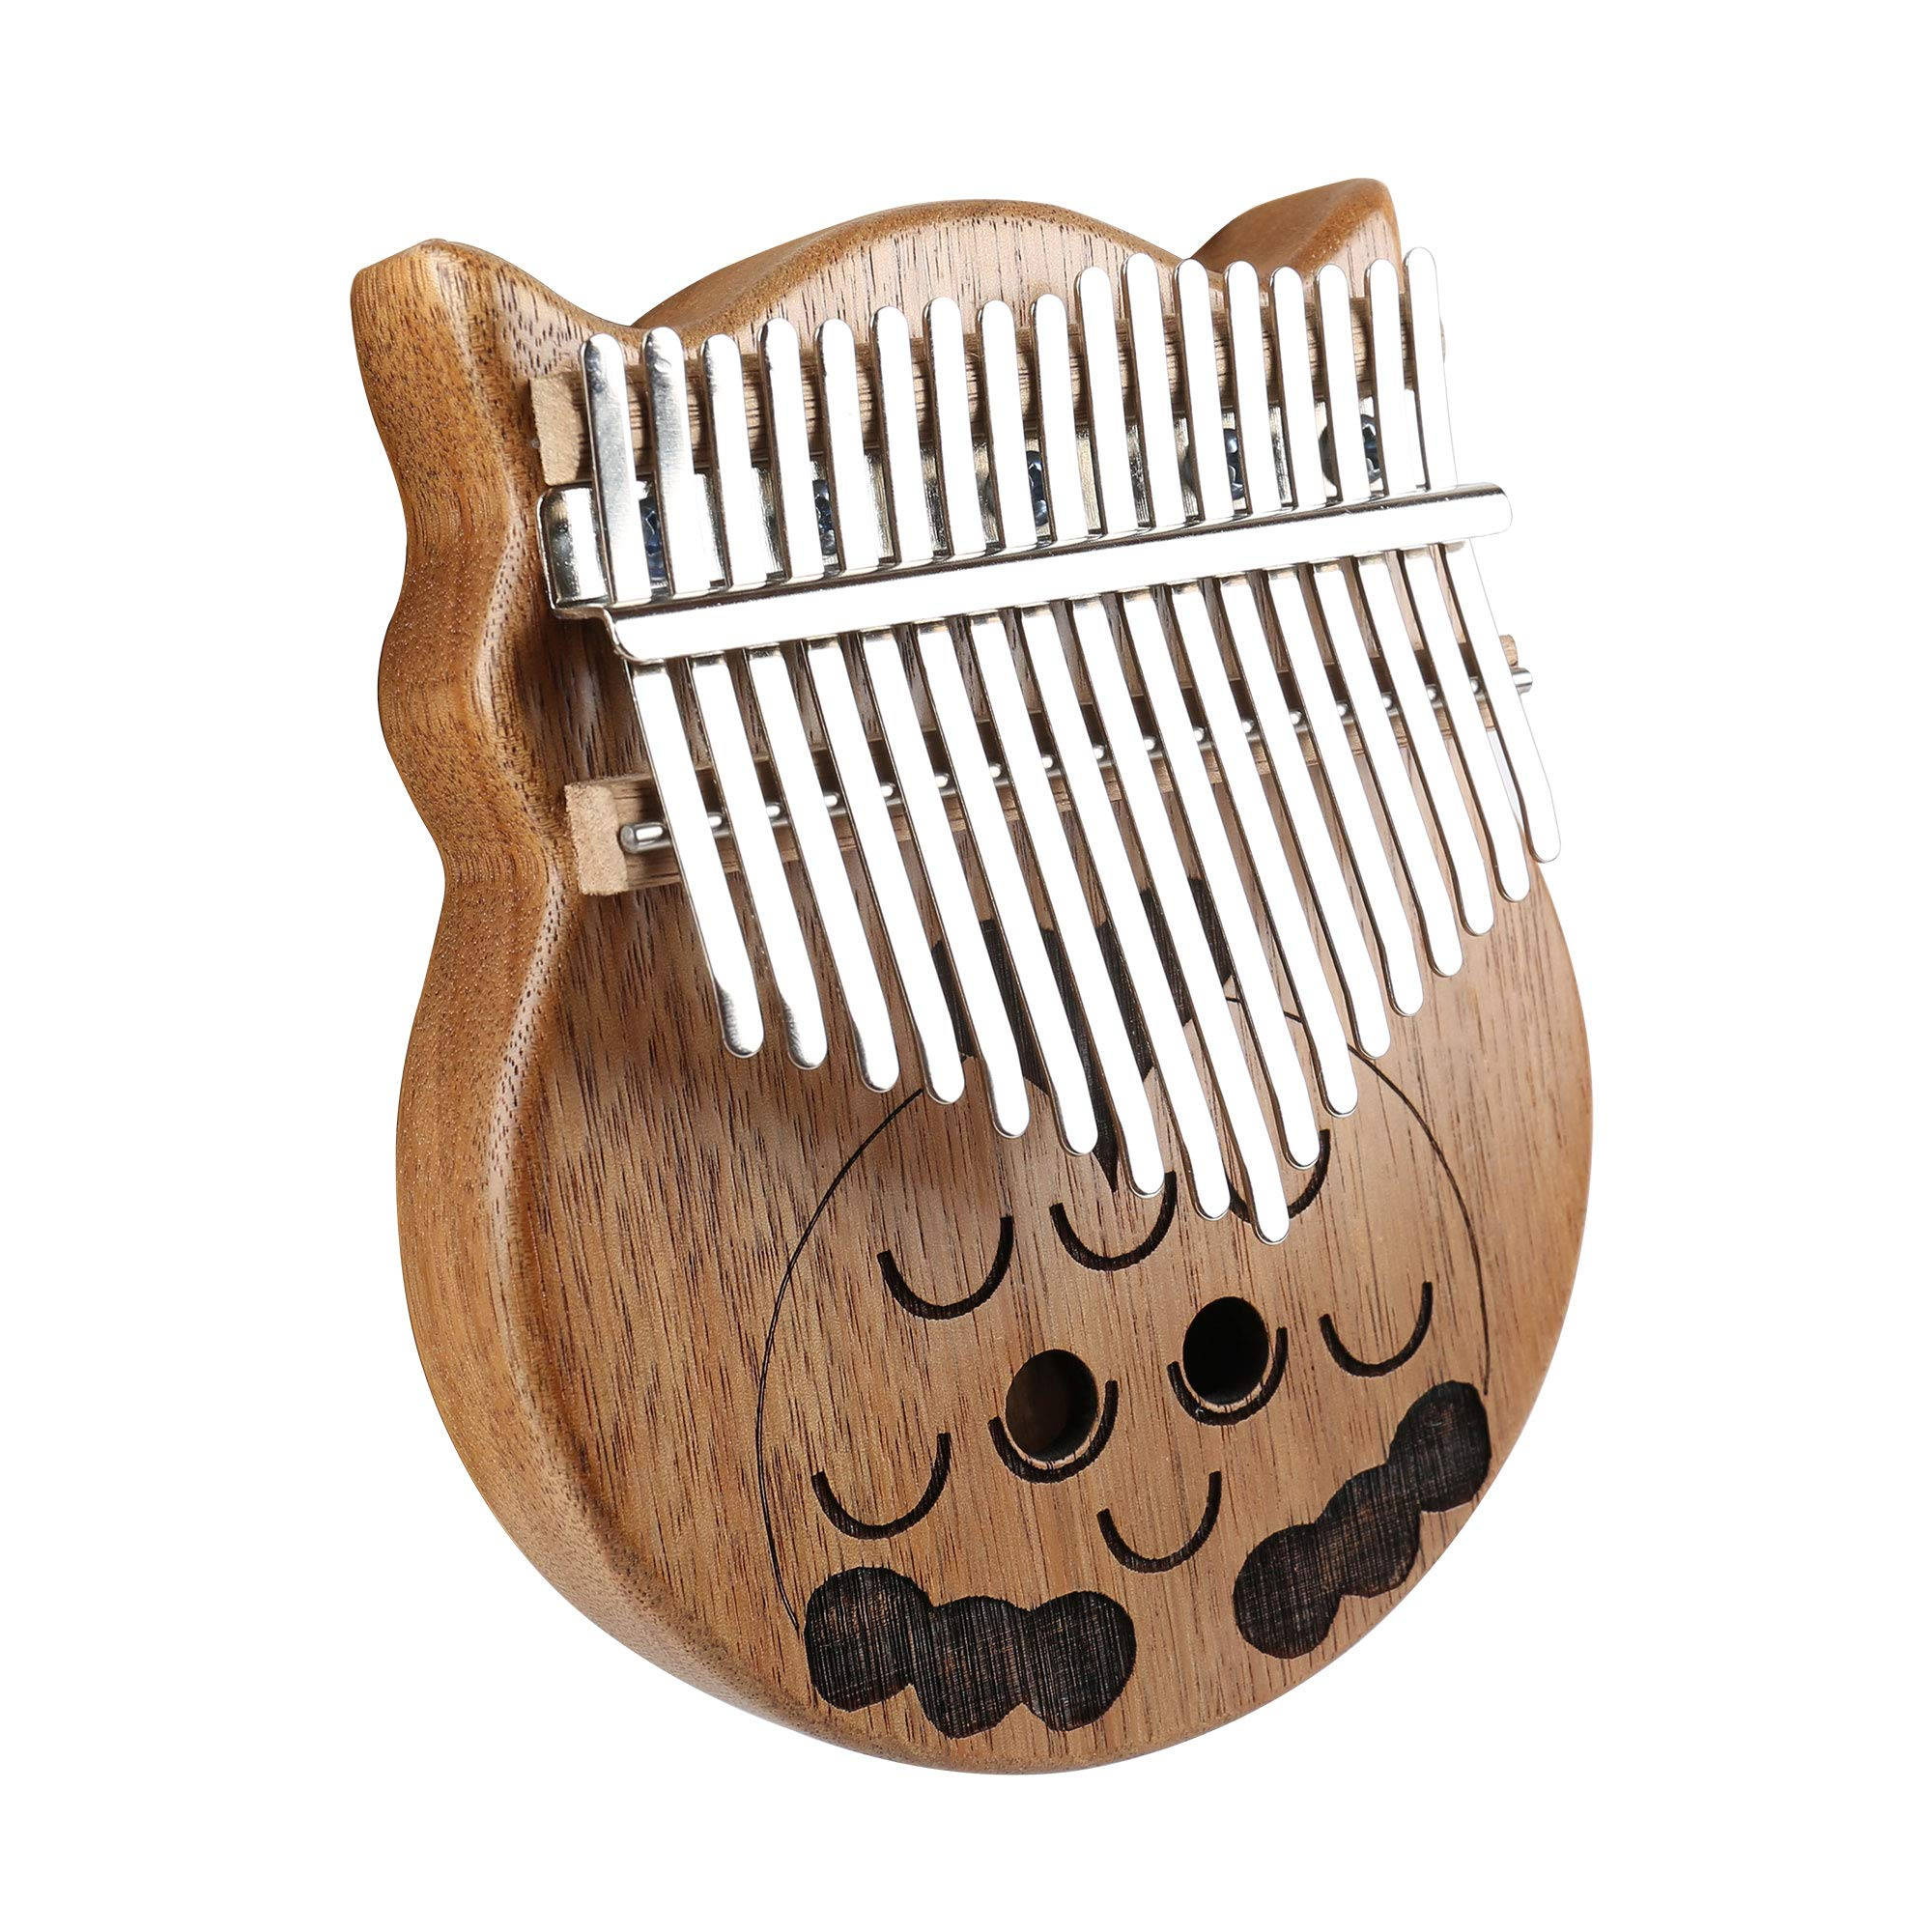 longdafeiUS Kalimba, Owl ThumbPianowith 17 Key Finger Piano Mbira Solid Walnut Wood Thumb Piano Finger Percussion Musical Gift by longdafeiUS